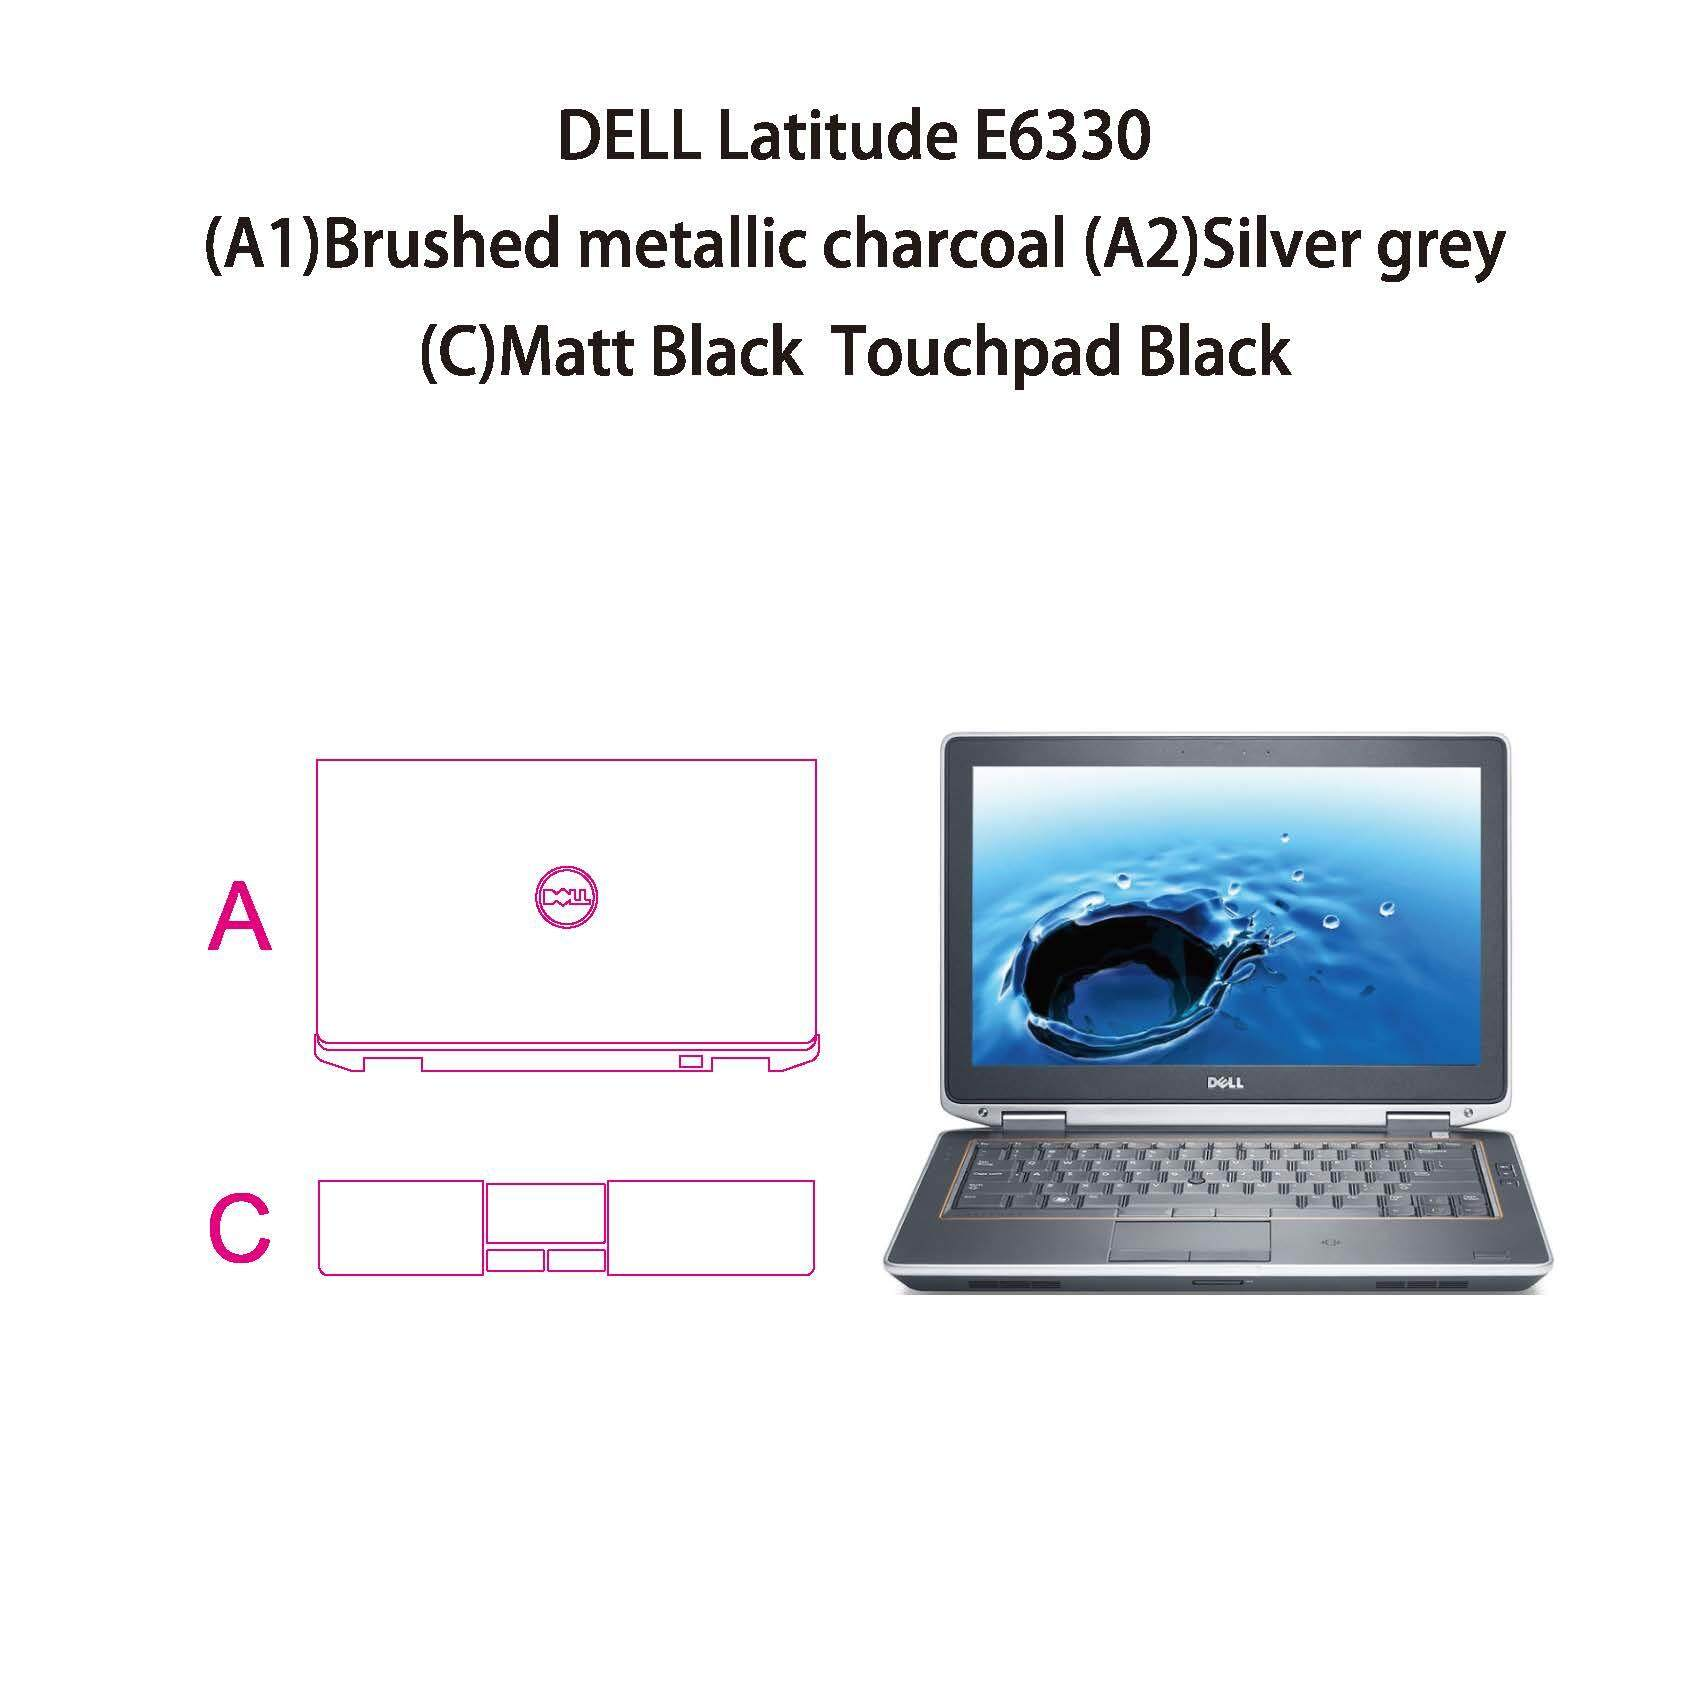 Made in Malaysia - Brushed metallic charcoal Dell Latitude E6330 laptop skin - sticker decal vinyl cover Malaysia